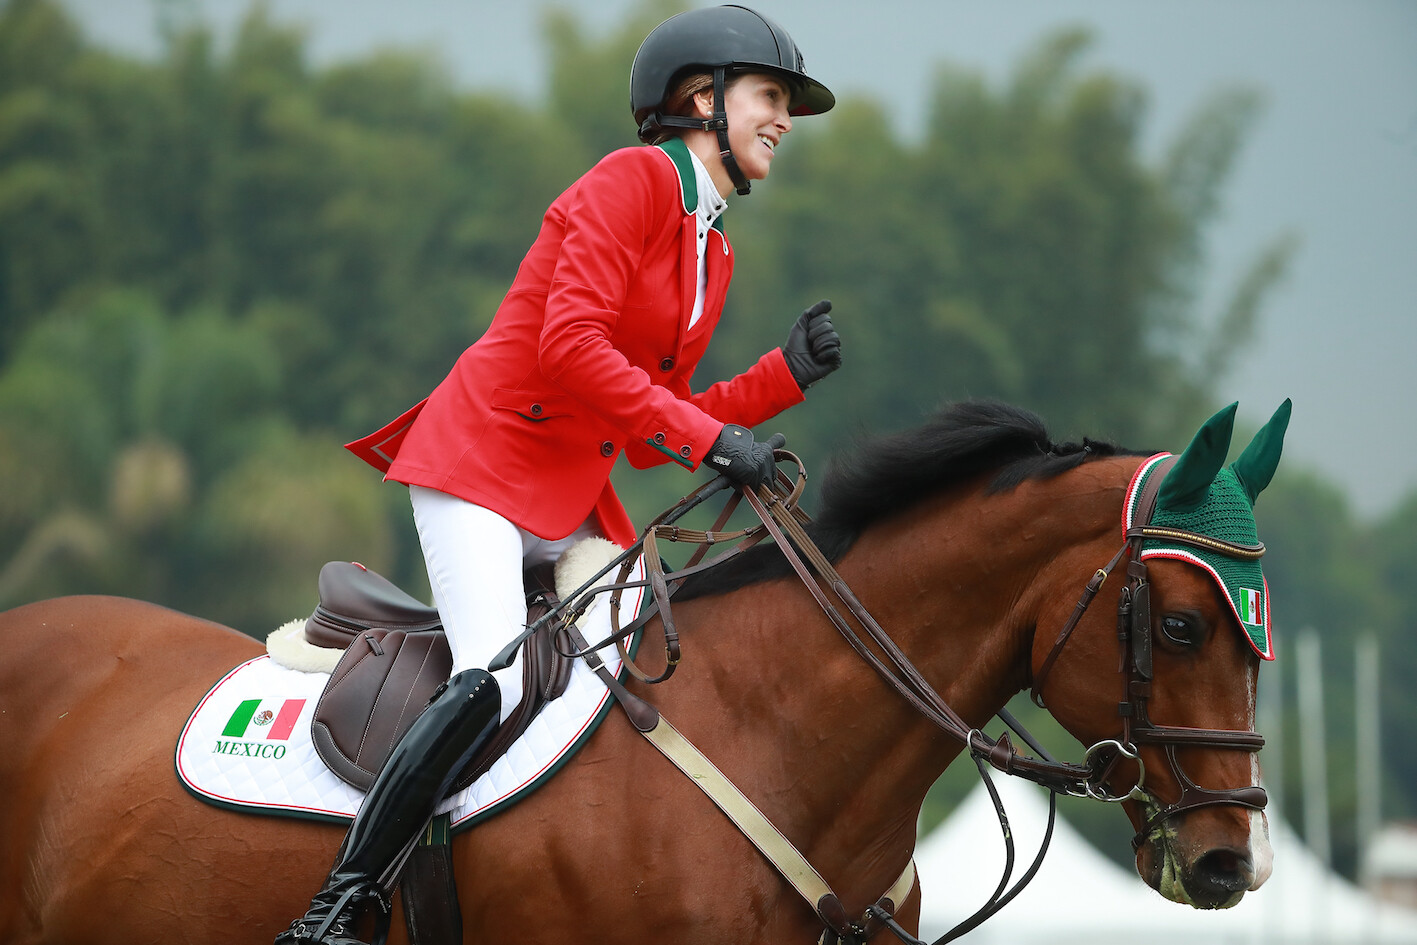 Lorenza O'Farrill and Queens Darling led Team